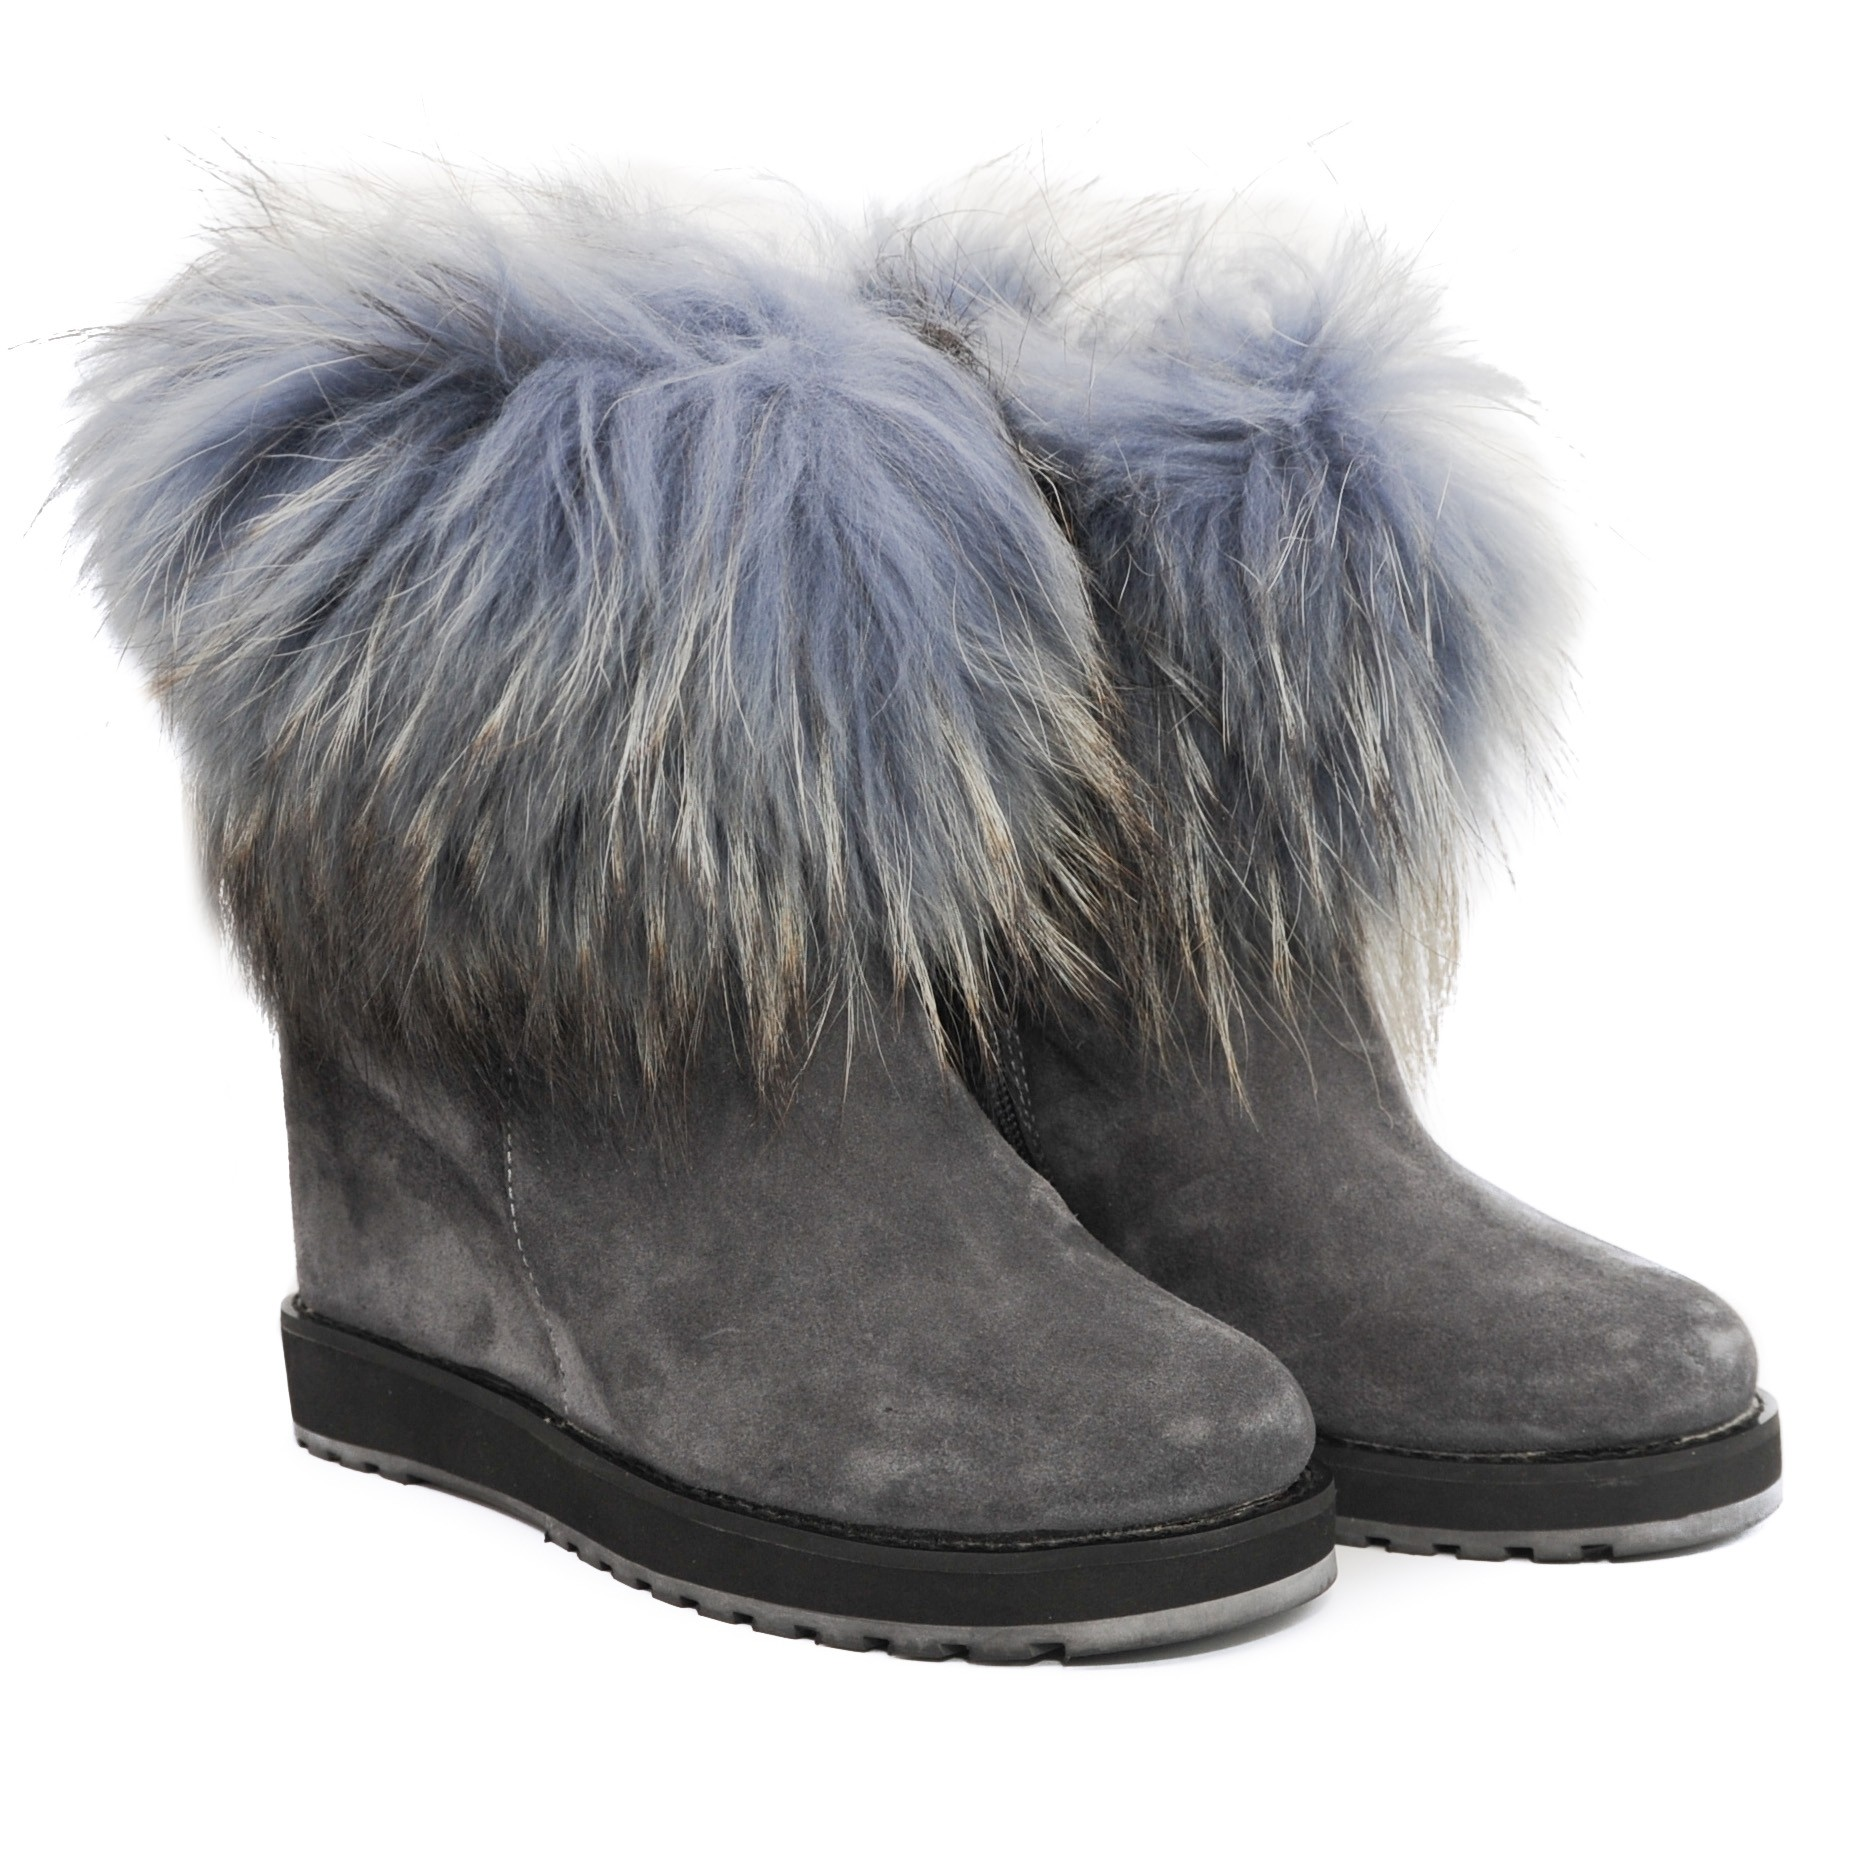 Ladies Pegia Light Grey Bluish Suede Ankle Boots with Inner Raised Heel and Fur Trim